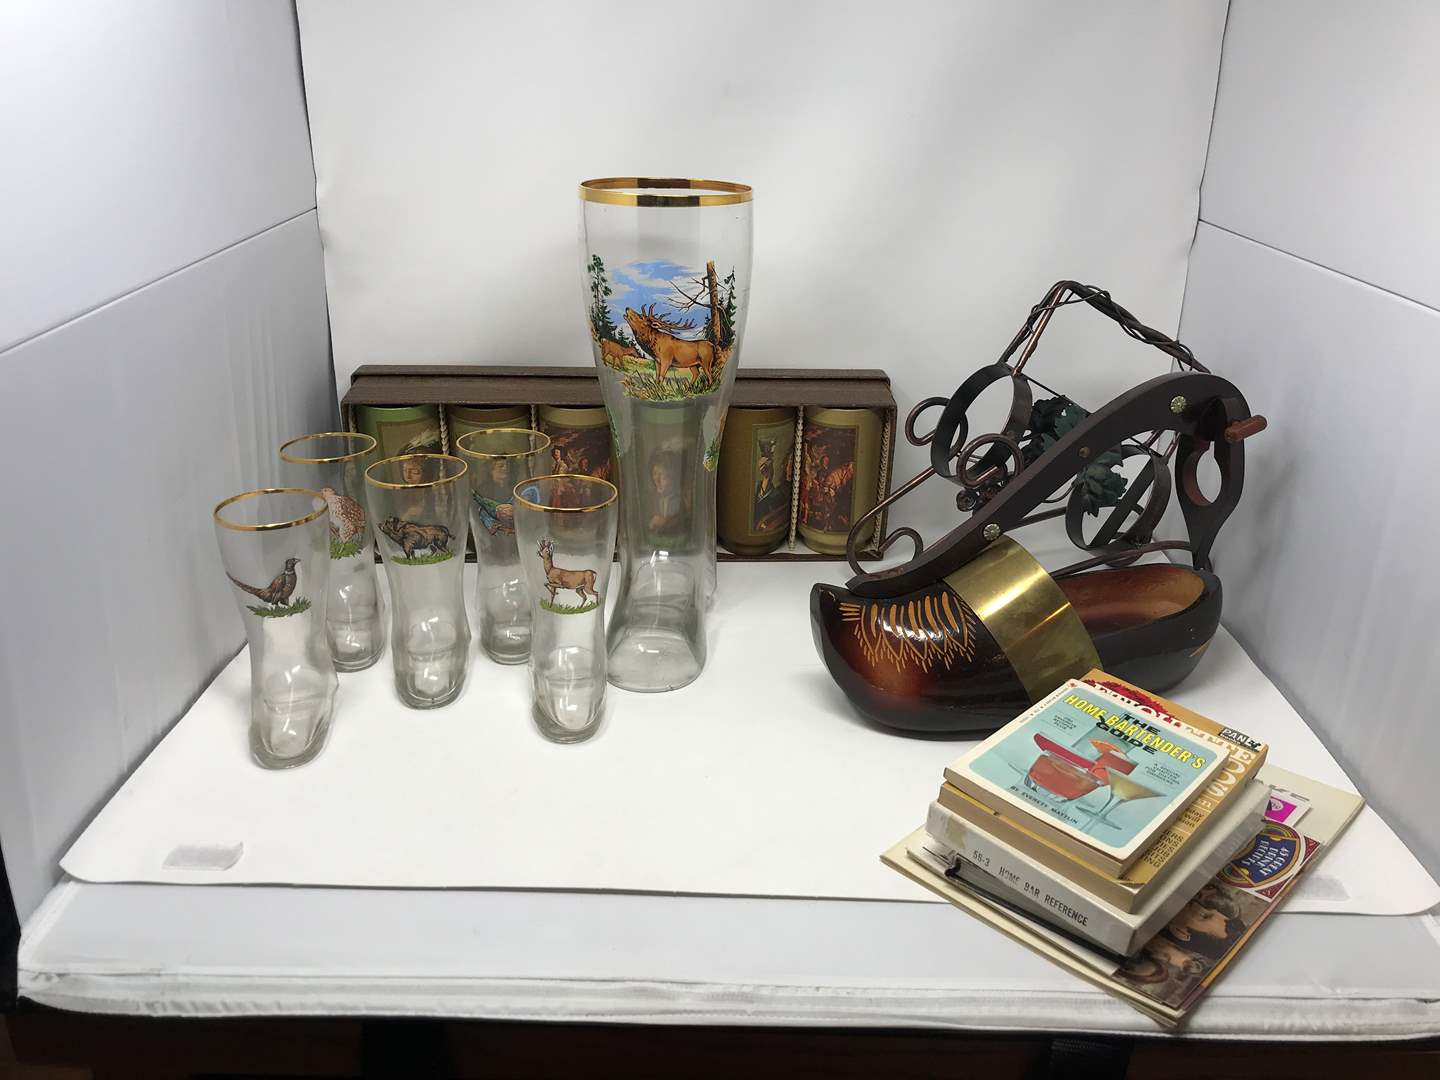 Lot # 69 - Cool Boot Steins, Wins Bottle Decor & Drink Mixing Books (main image)